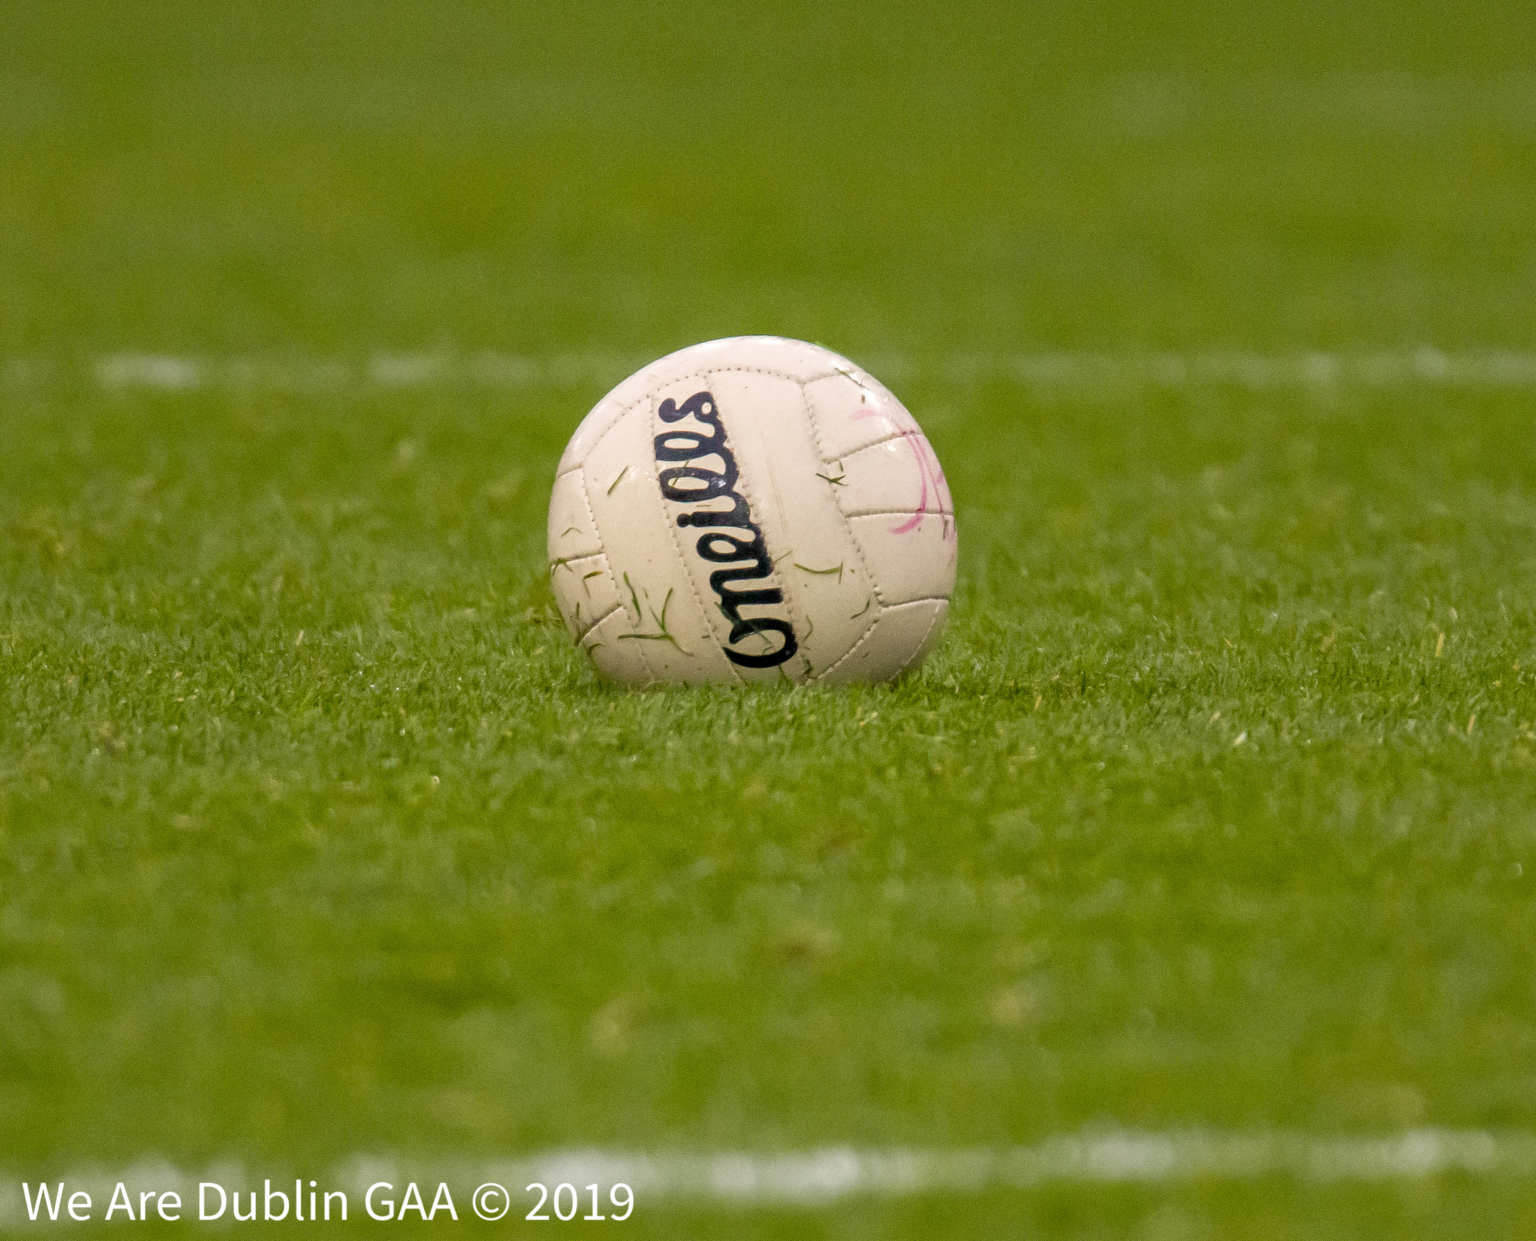 A Gaelic football on a grass pitch to signify the three proposed football rule changes to be voted on at Special Congress